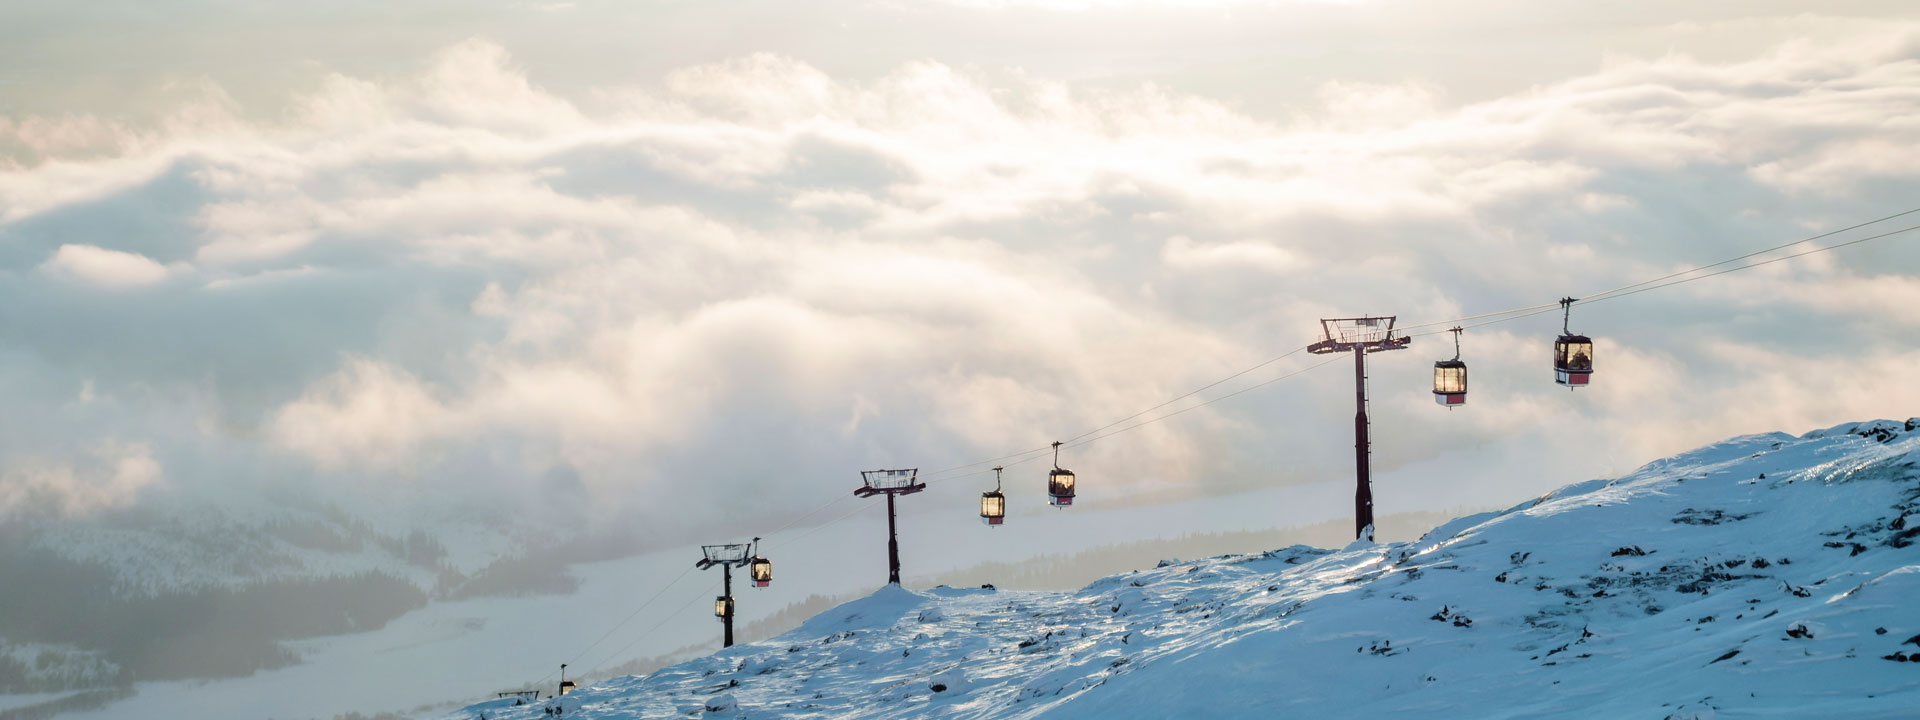 Ski lift with mountains and clouds in the background